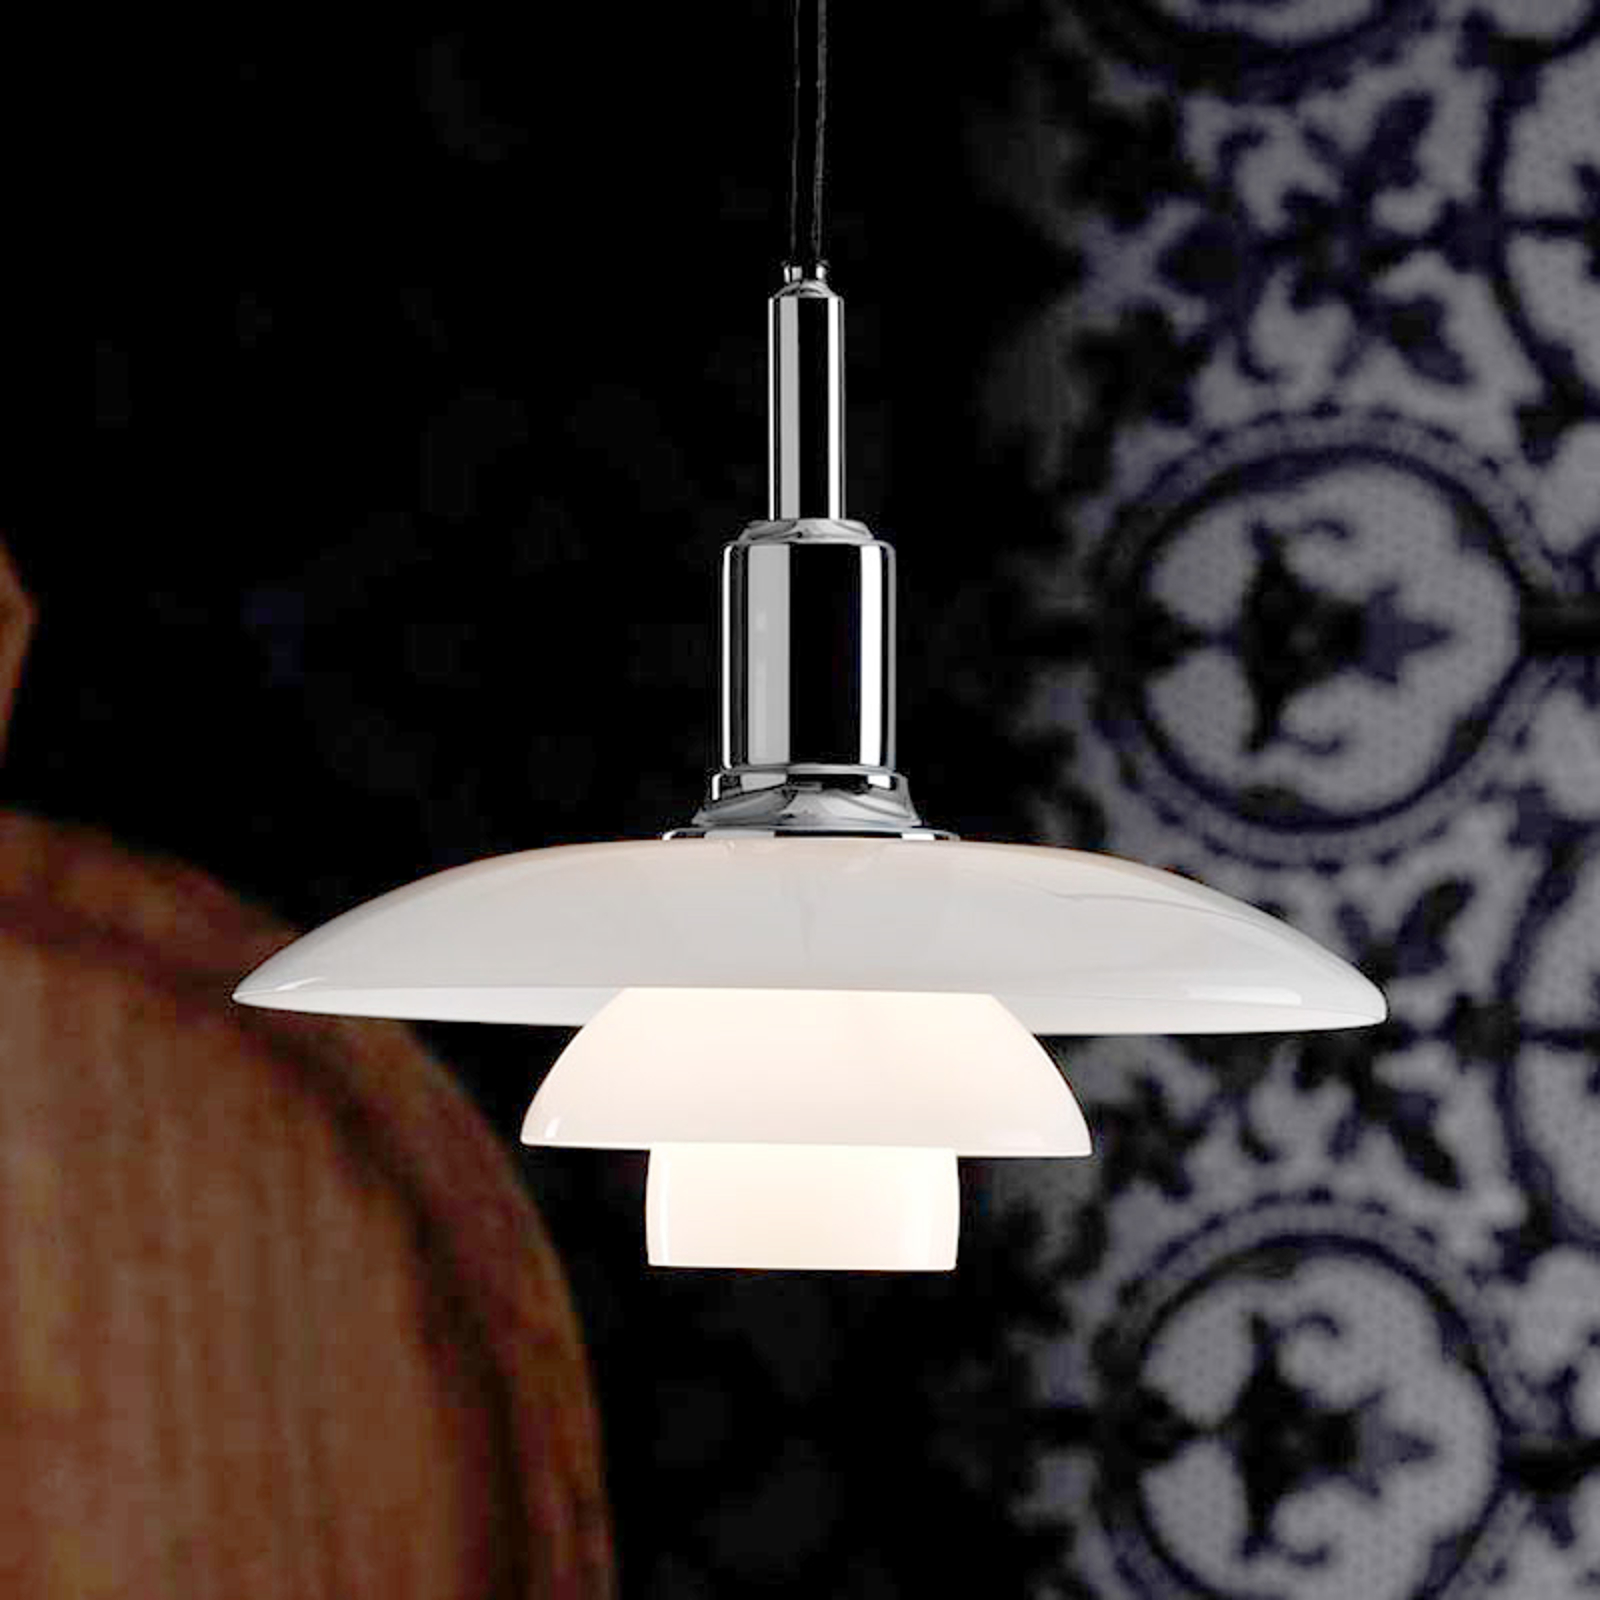 Decoratieve hanglamp PH 3/2, chroom